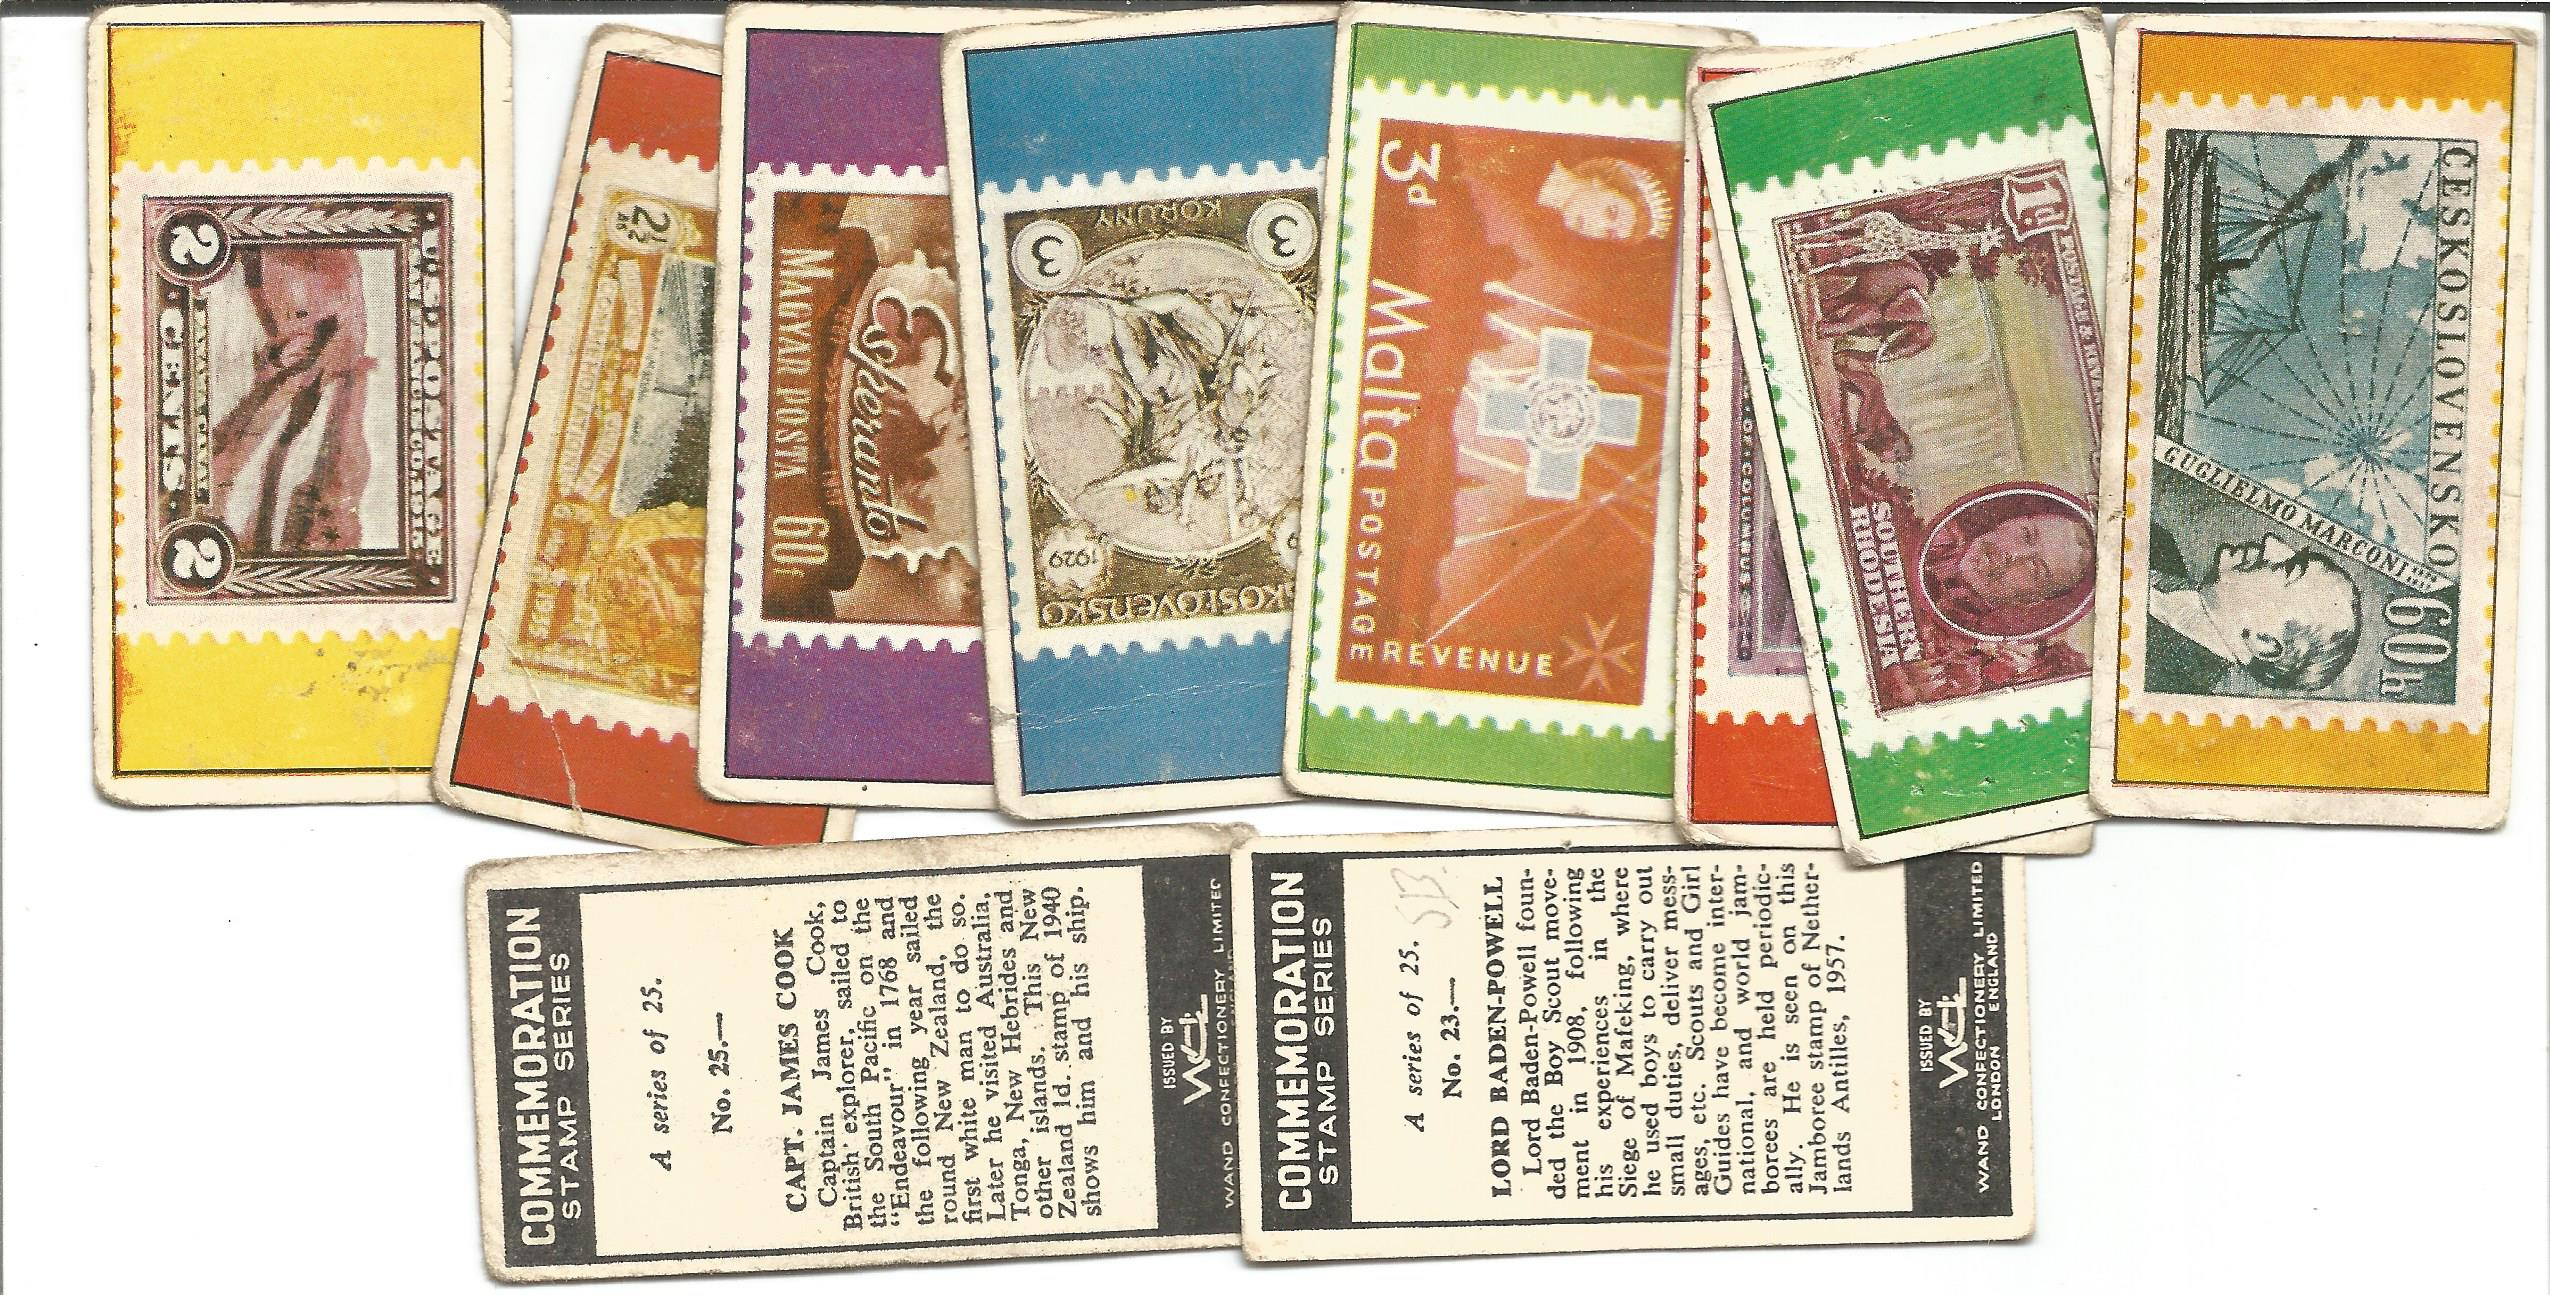 Cigarette card collection. Includes Lyons maid 1966 famous cars 38 cards, The molassme co 1964 - dog - Image 3 of 3